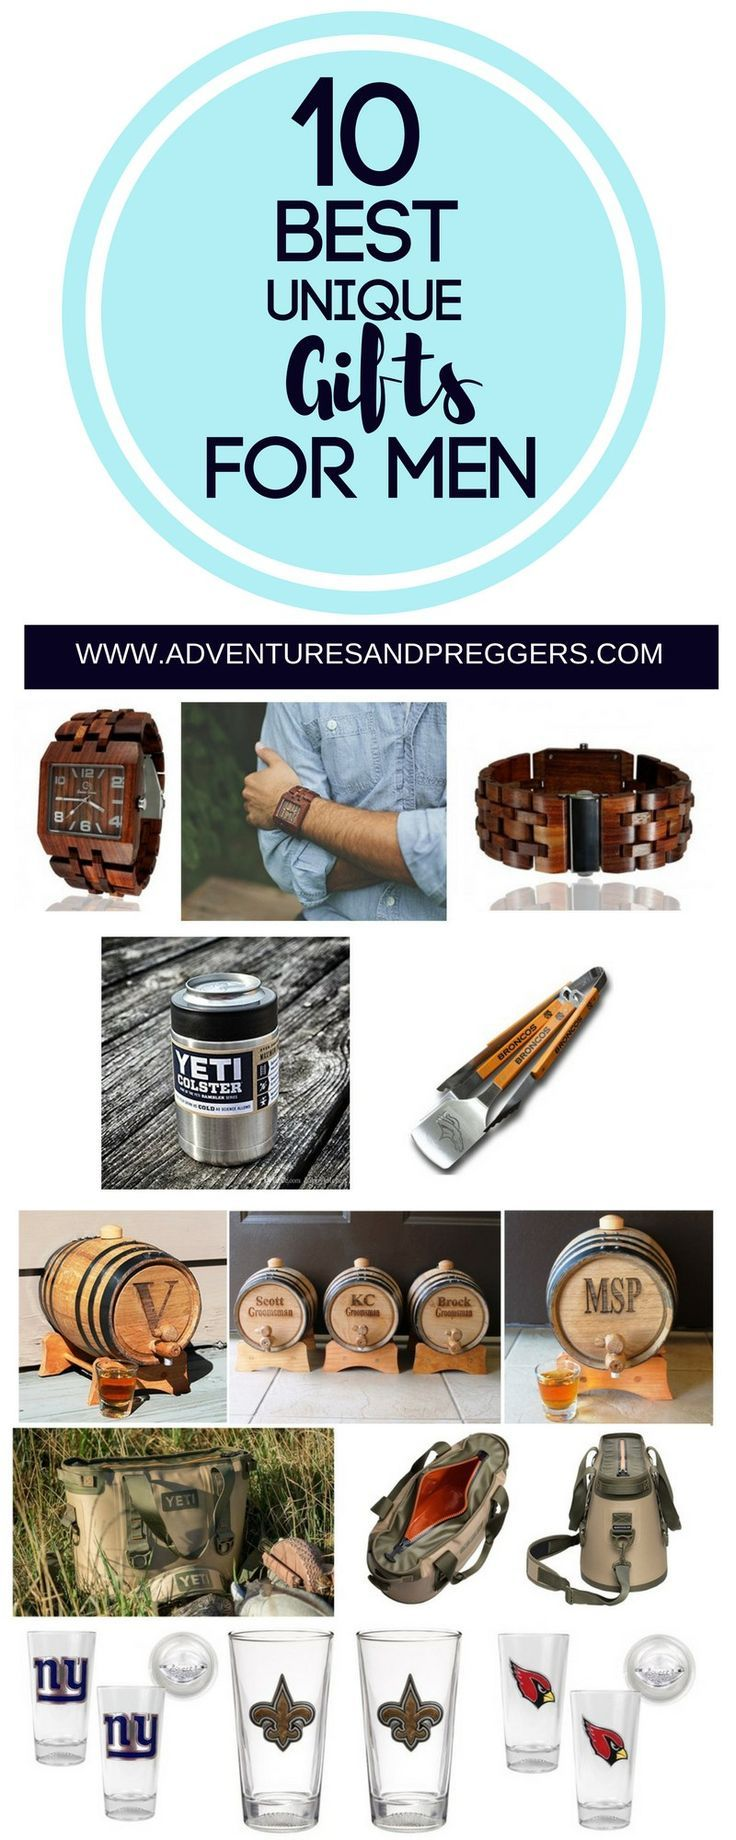 Unique Gift ideas for men.  Pin for holiday gift ideas!